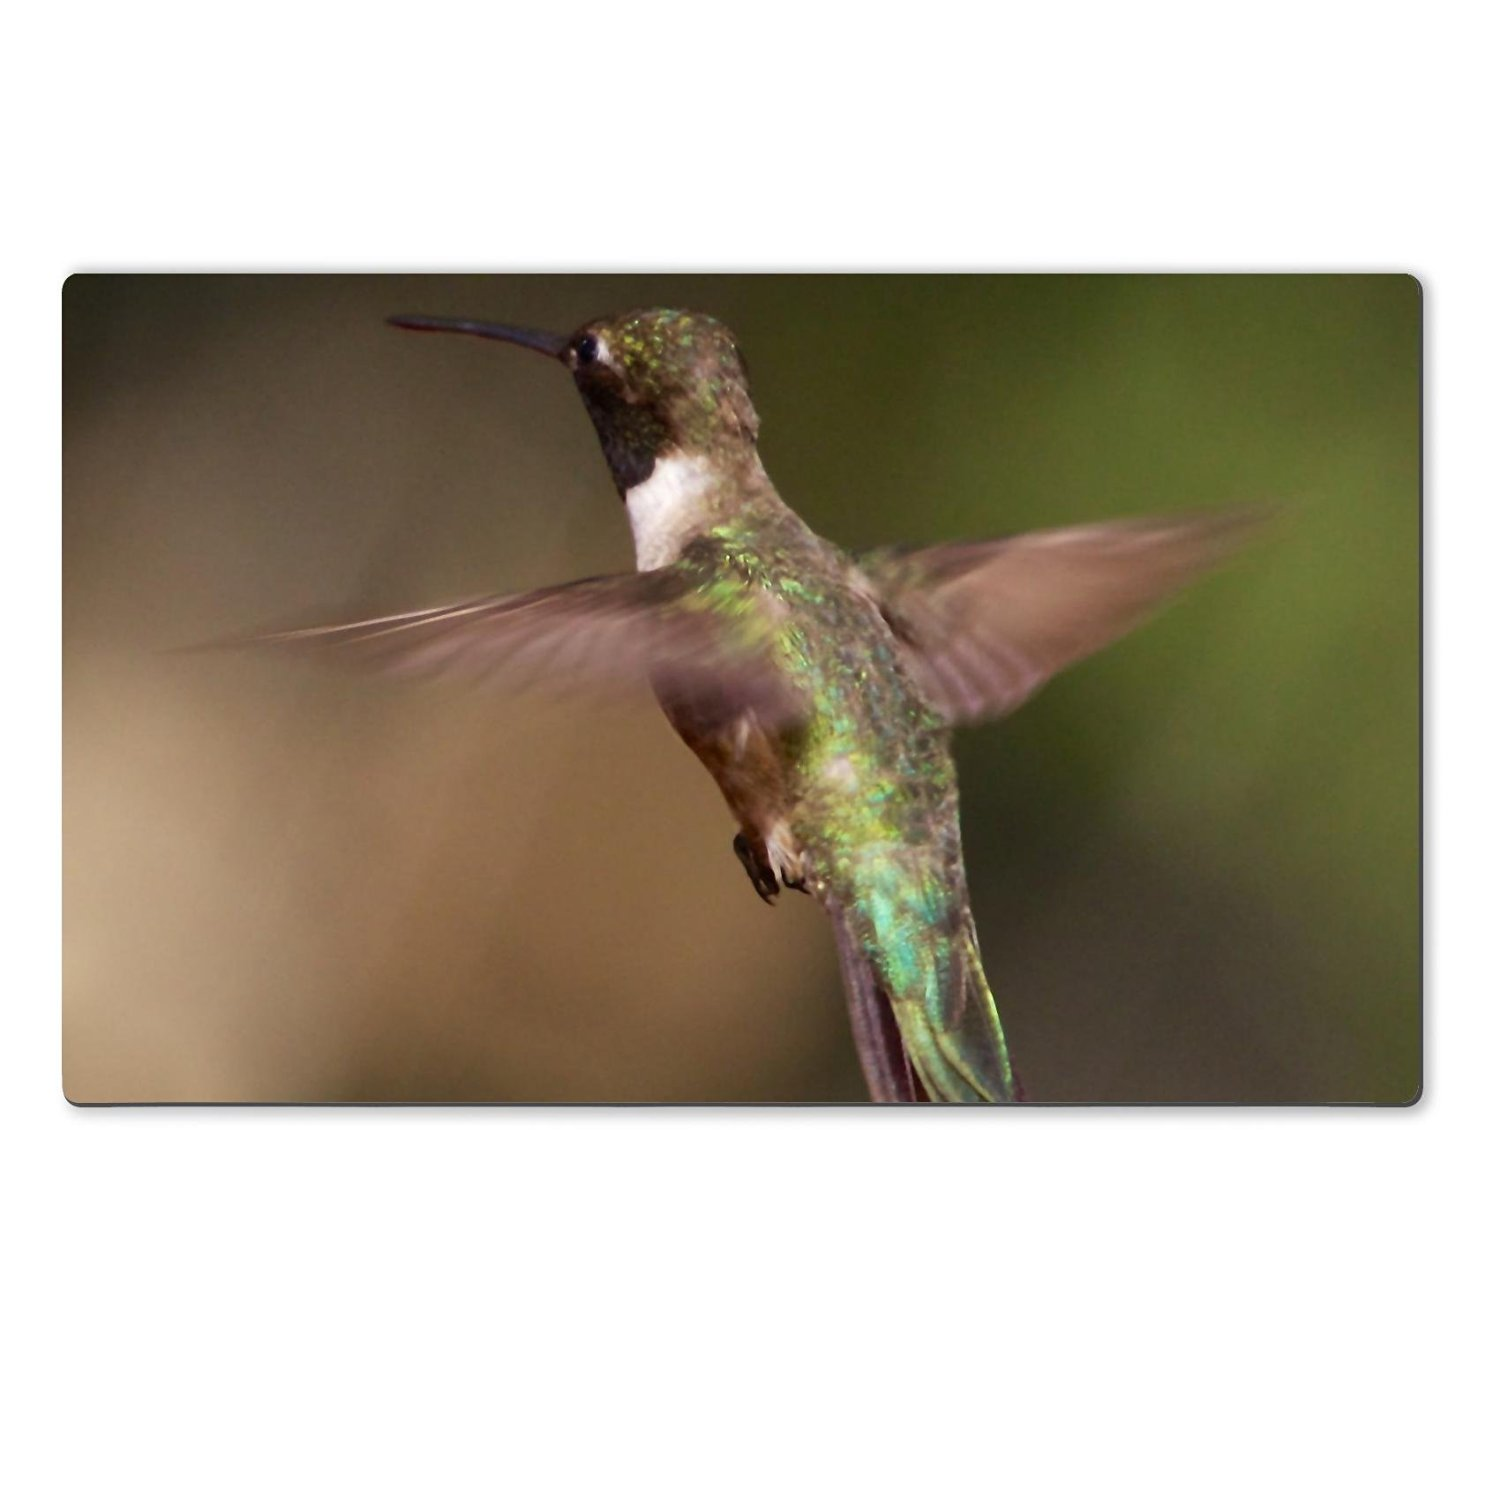 Luxlady Large TableMat Natural Rubber Material Image 19213237441